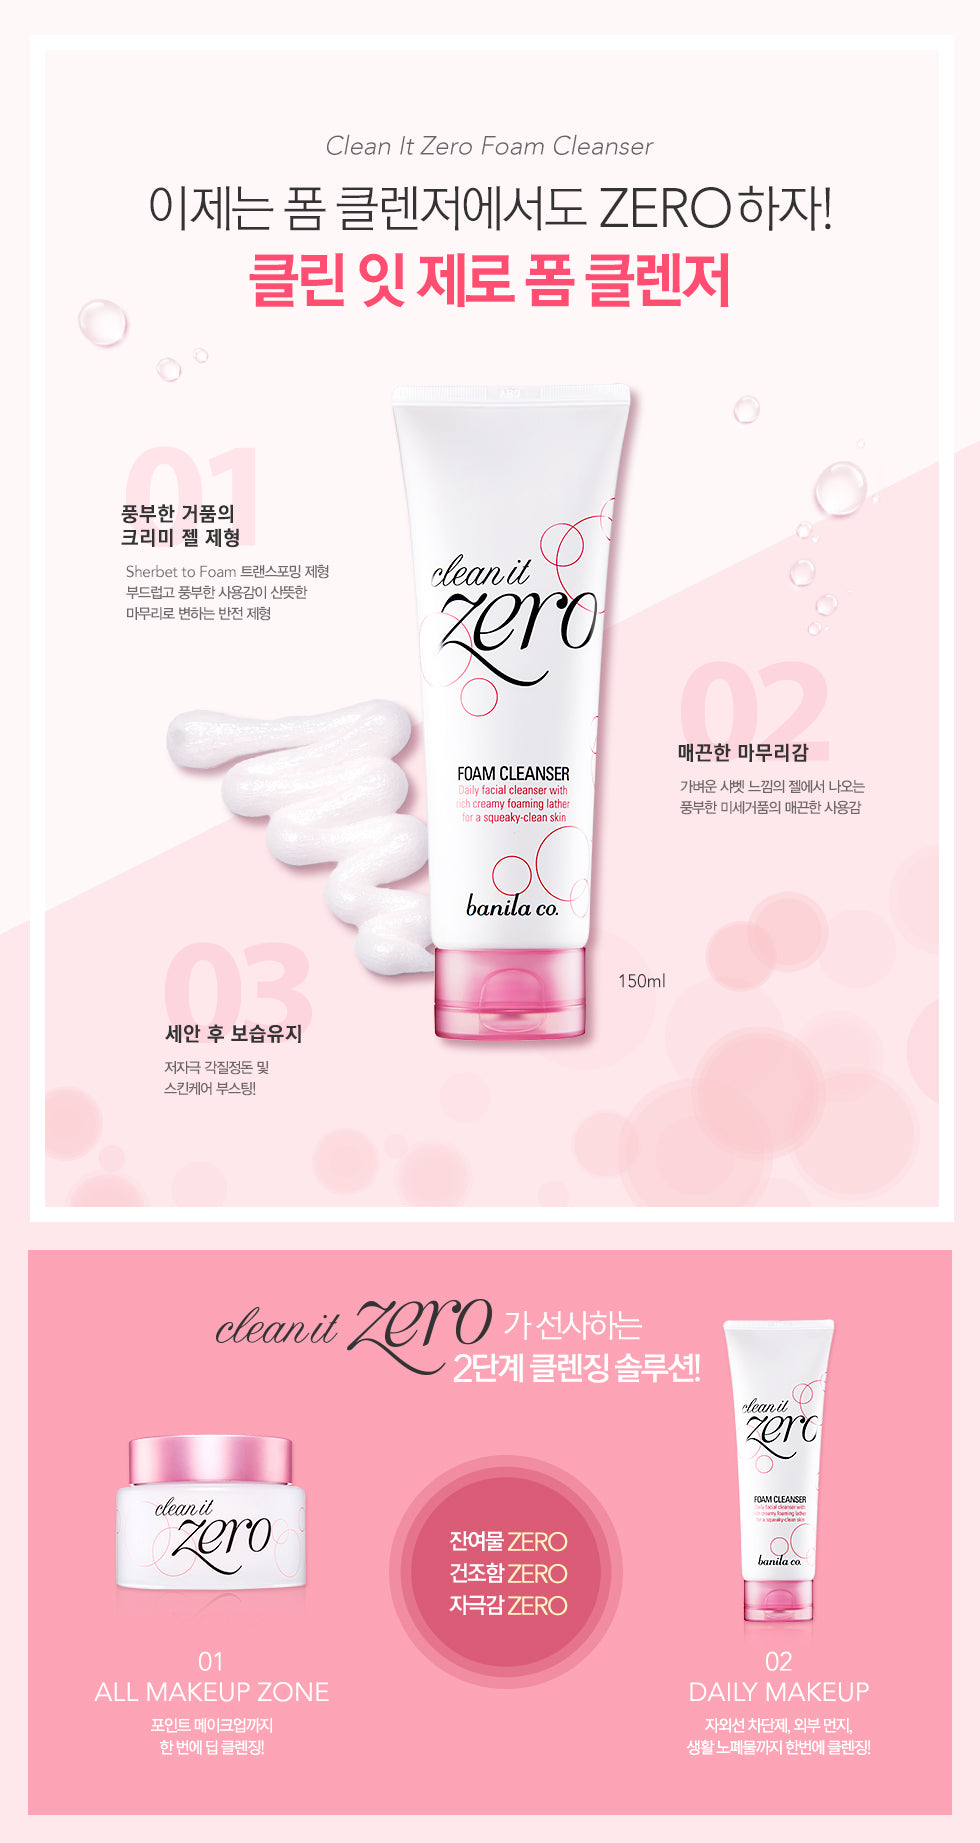 Banila Co - Clean It Zero Foam Cleanser